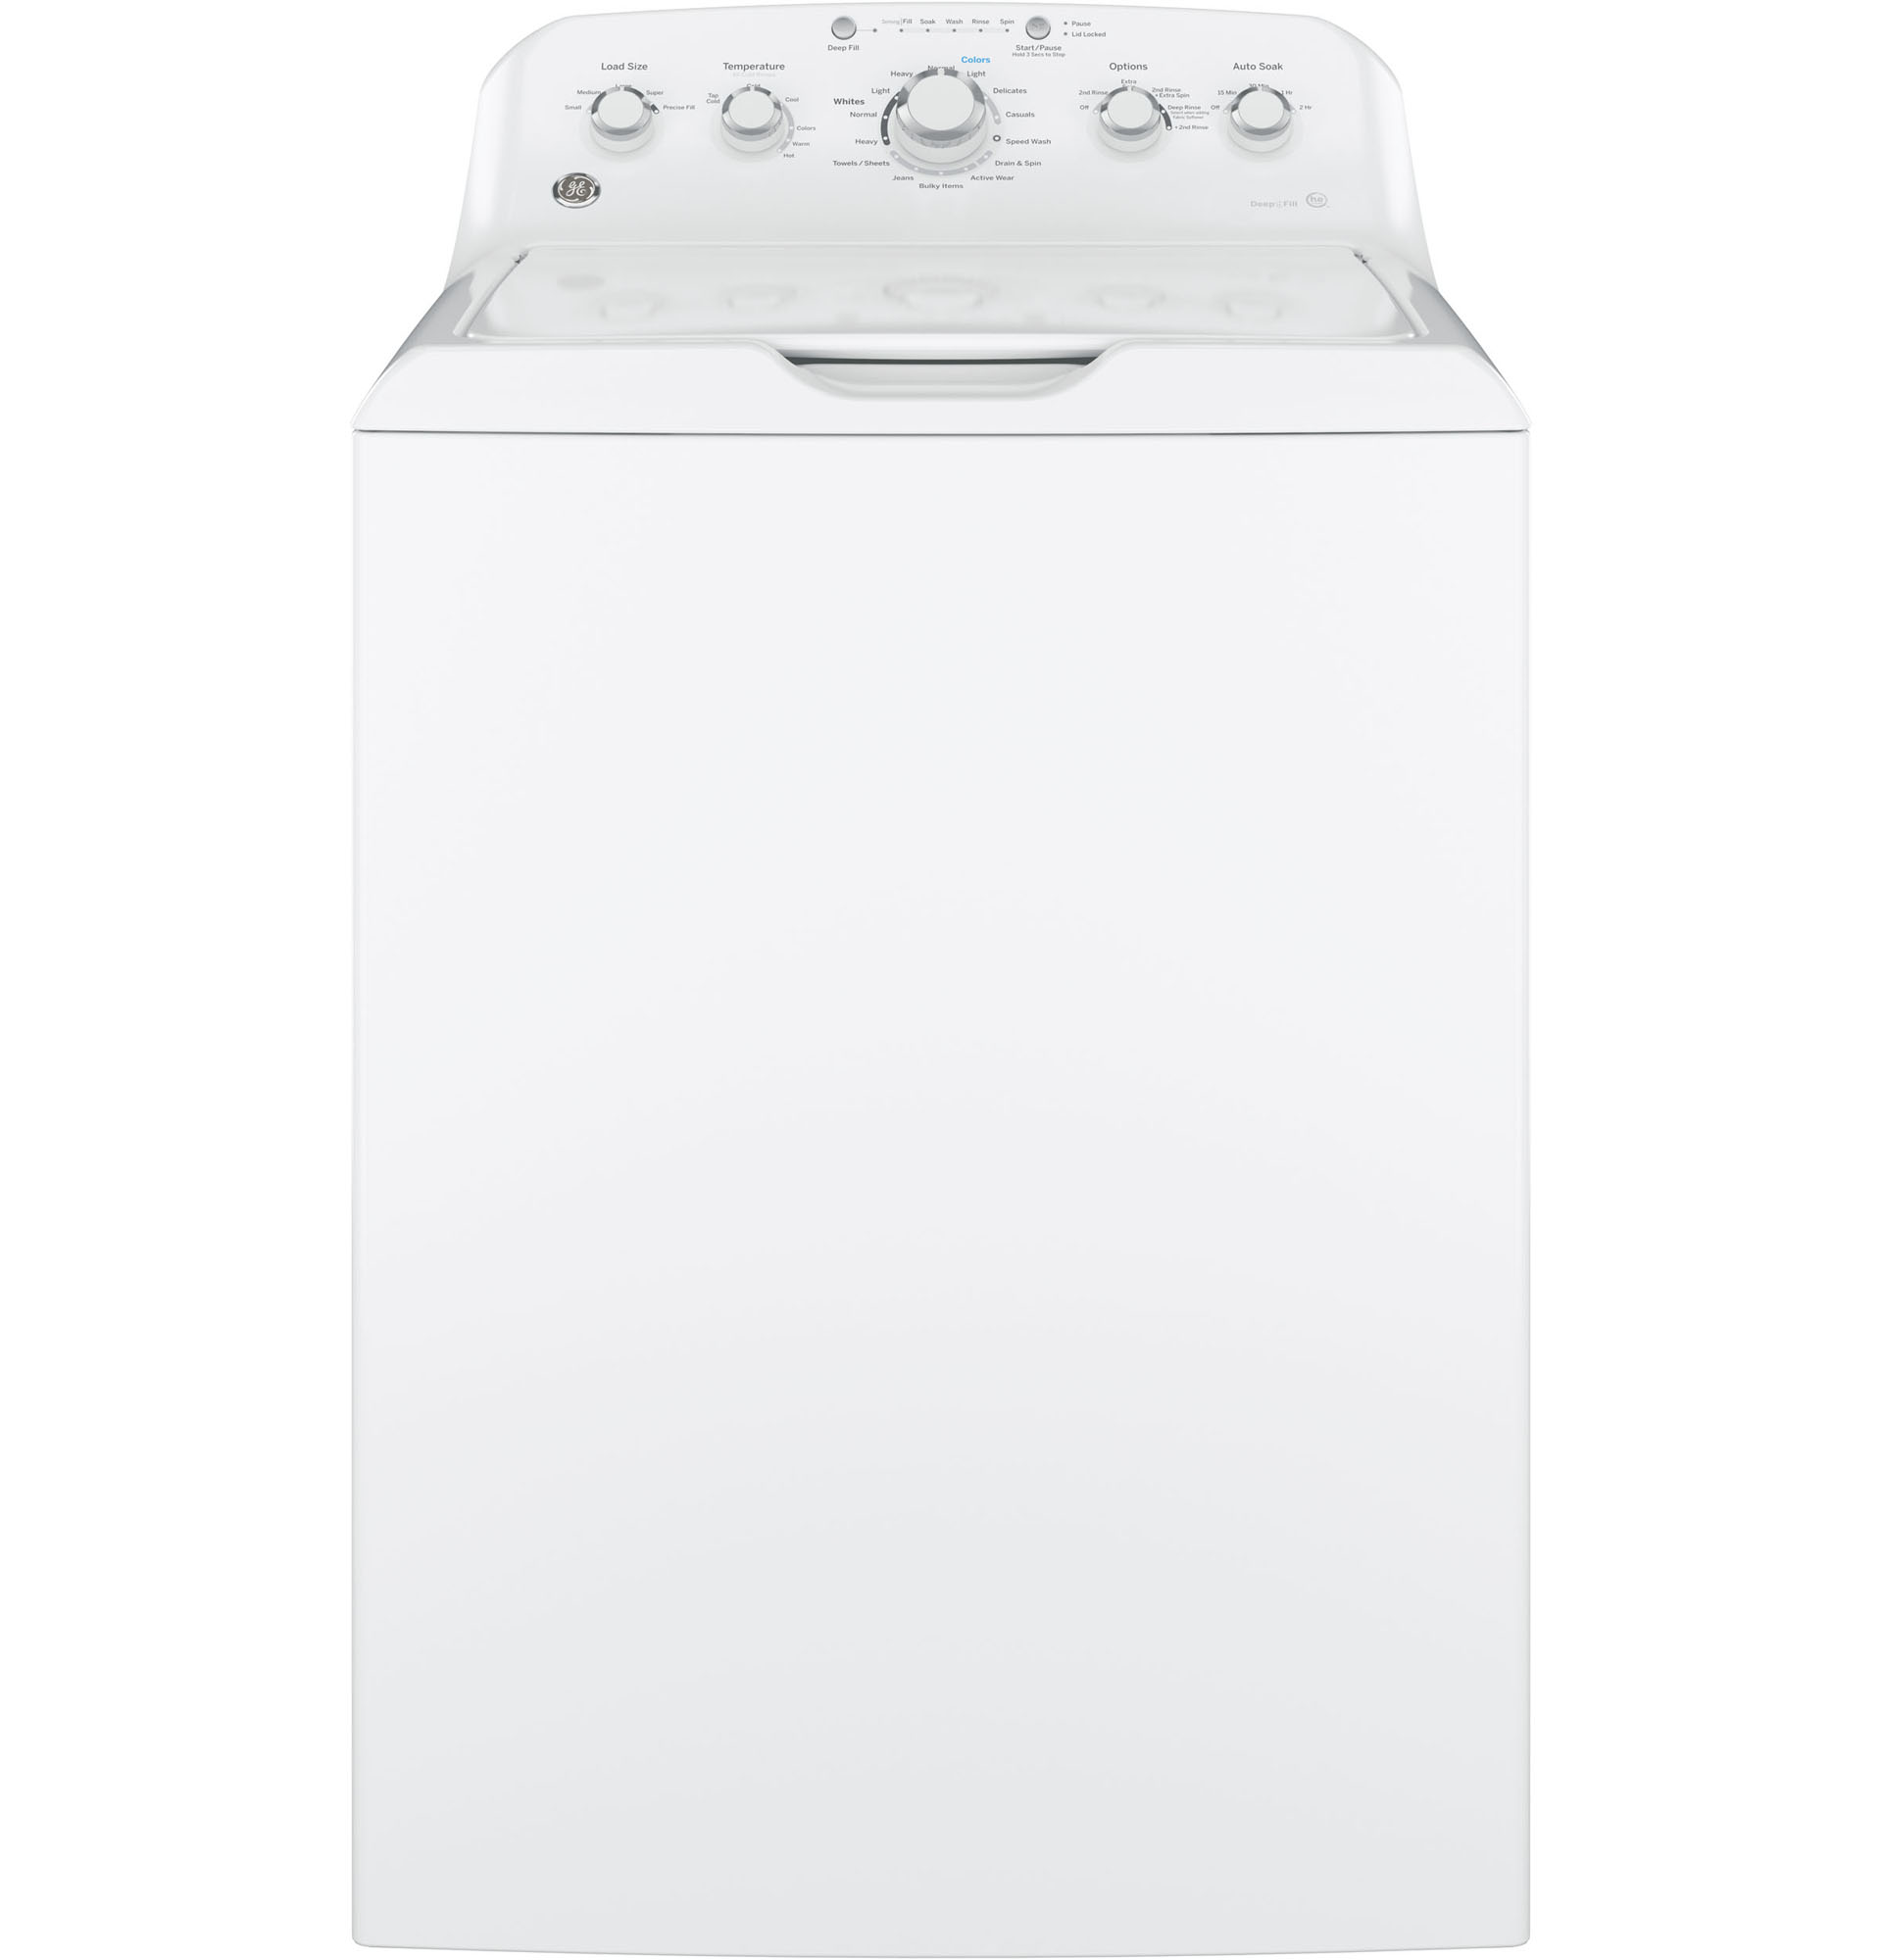 GE Appliances GTW460ASJWW 4.2 cu. ft. Top Load Washer - White